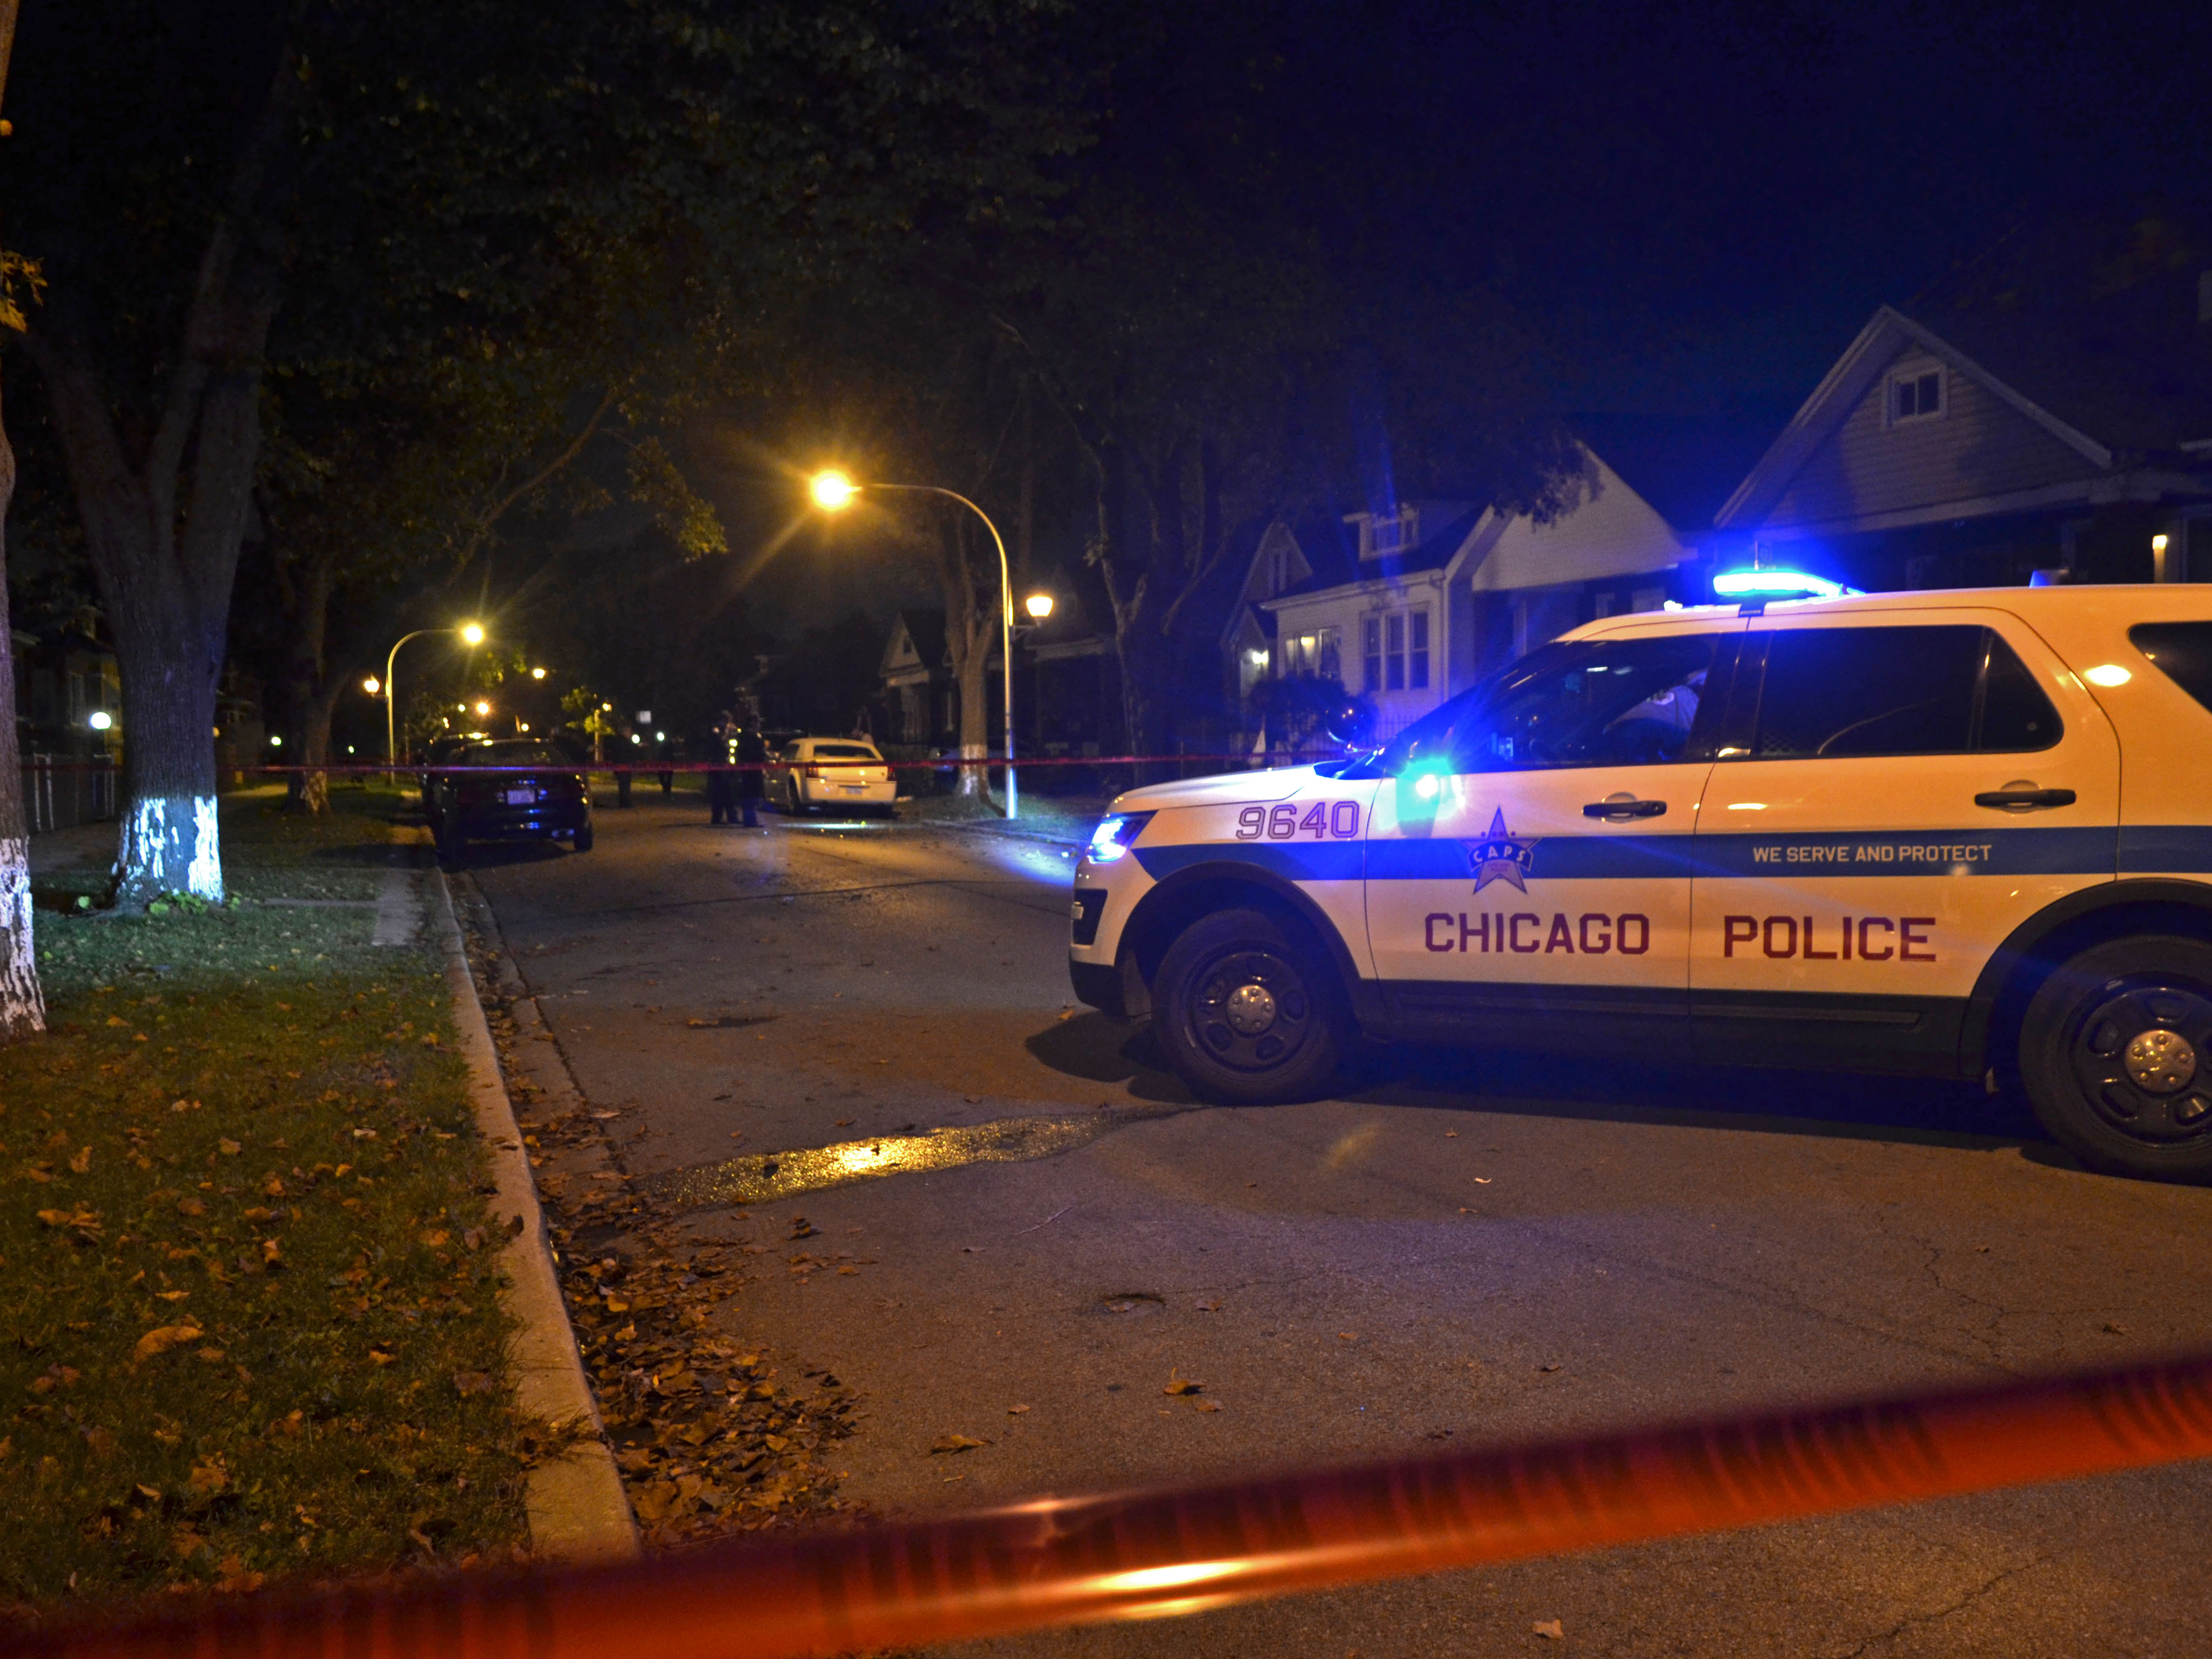 Police investigate a homicide about 1:30 a.m. Wednesday, October 3, 2018 in the 9100 block of South Ellis Ave in Chicago. | Justin Jackson/ Sun-Times